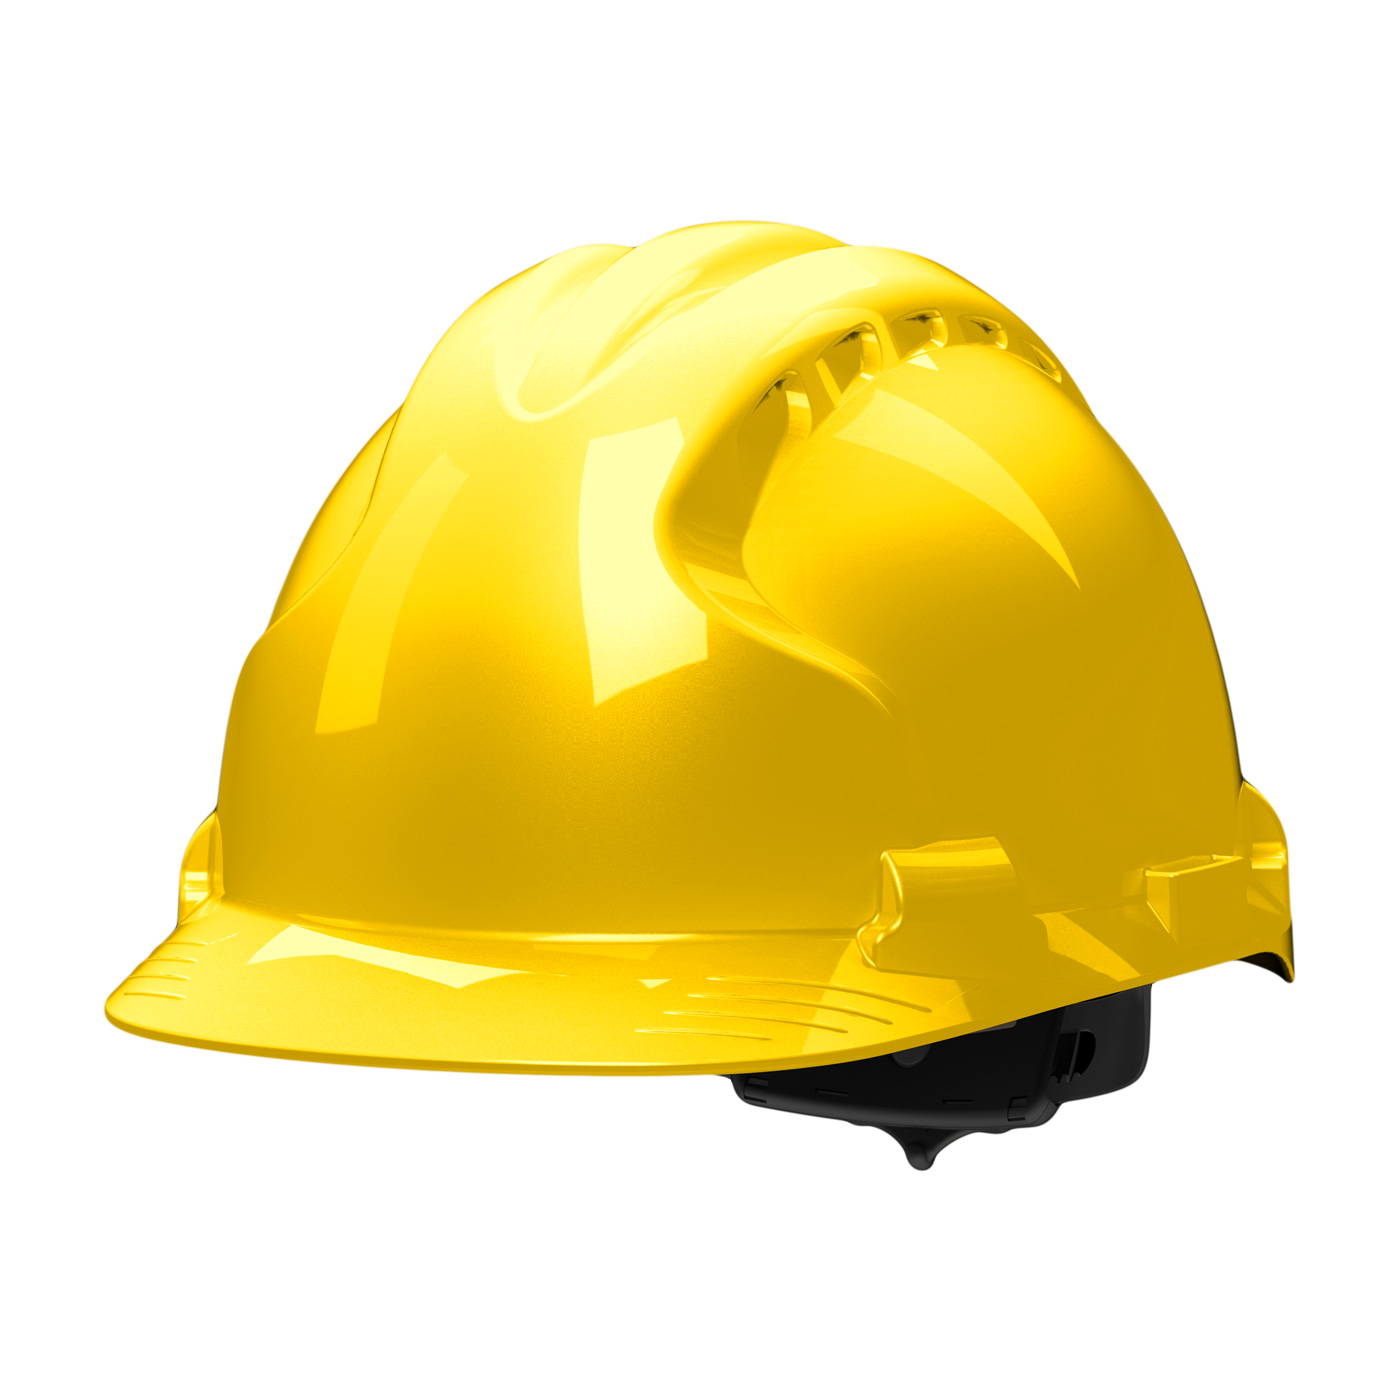 Type II Hard Hat with HDPE Shell, EPS Impact Liner, Polyester Suspension and Wheel Ratchet Adjustment, Yellow, OS